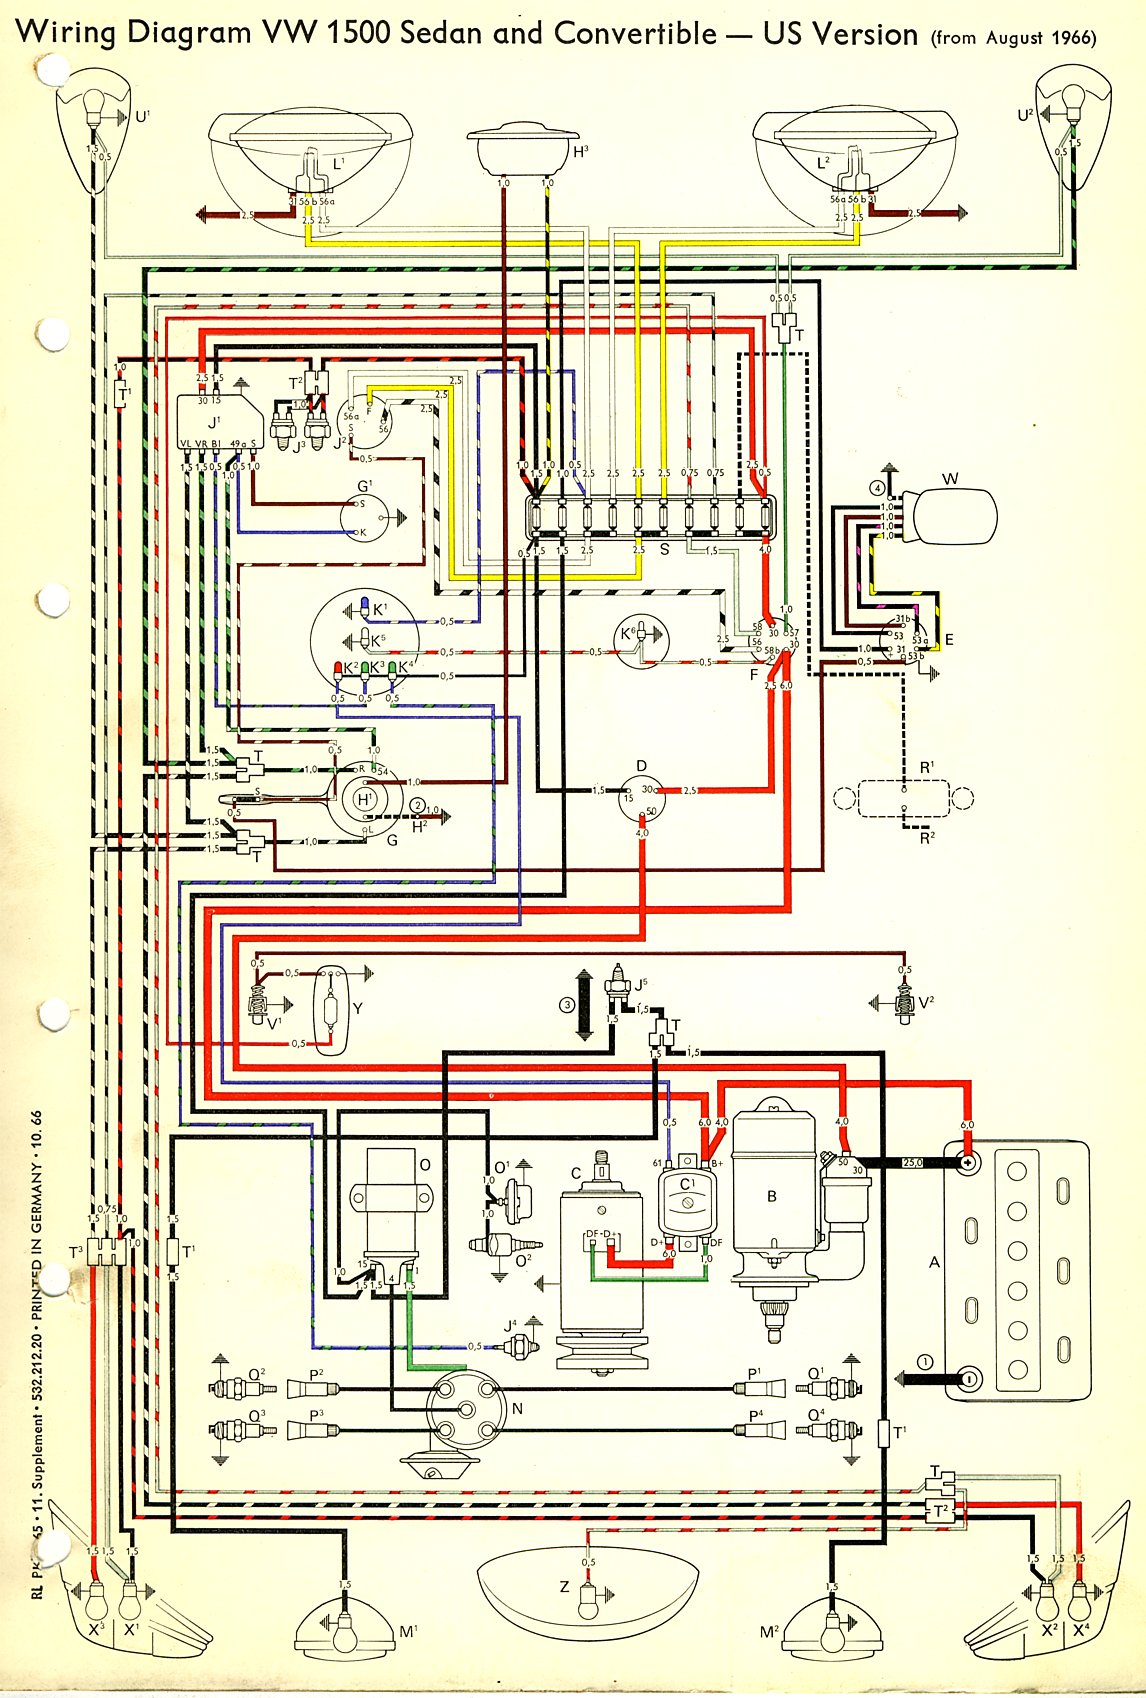 98 Beetle Trunk Wiring Diagram Will Be A Thing Cfl42 Dimming Ballast Diagrams Images Gallery